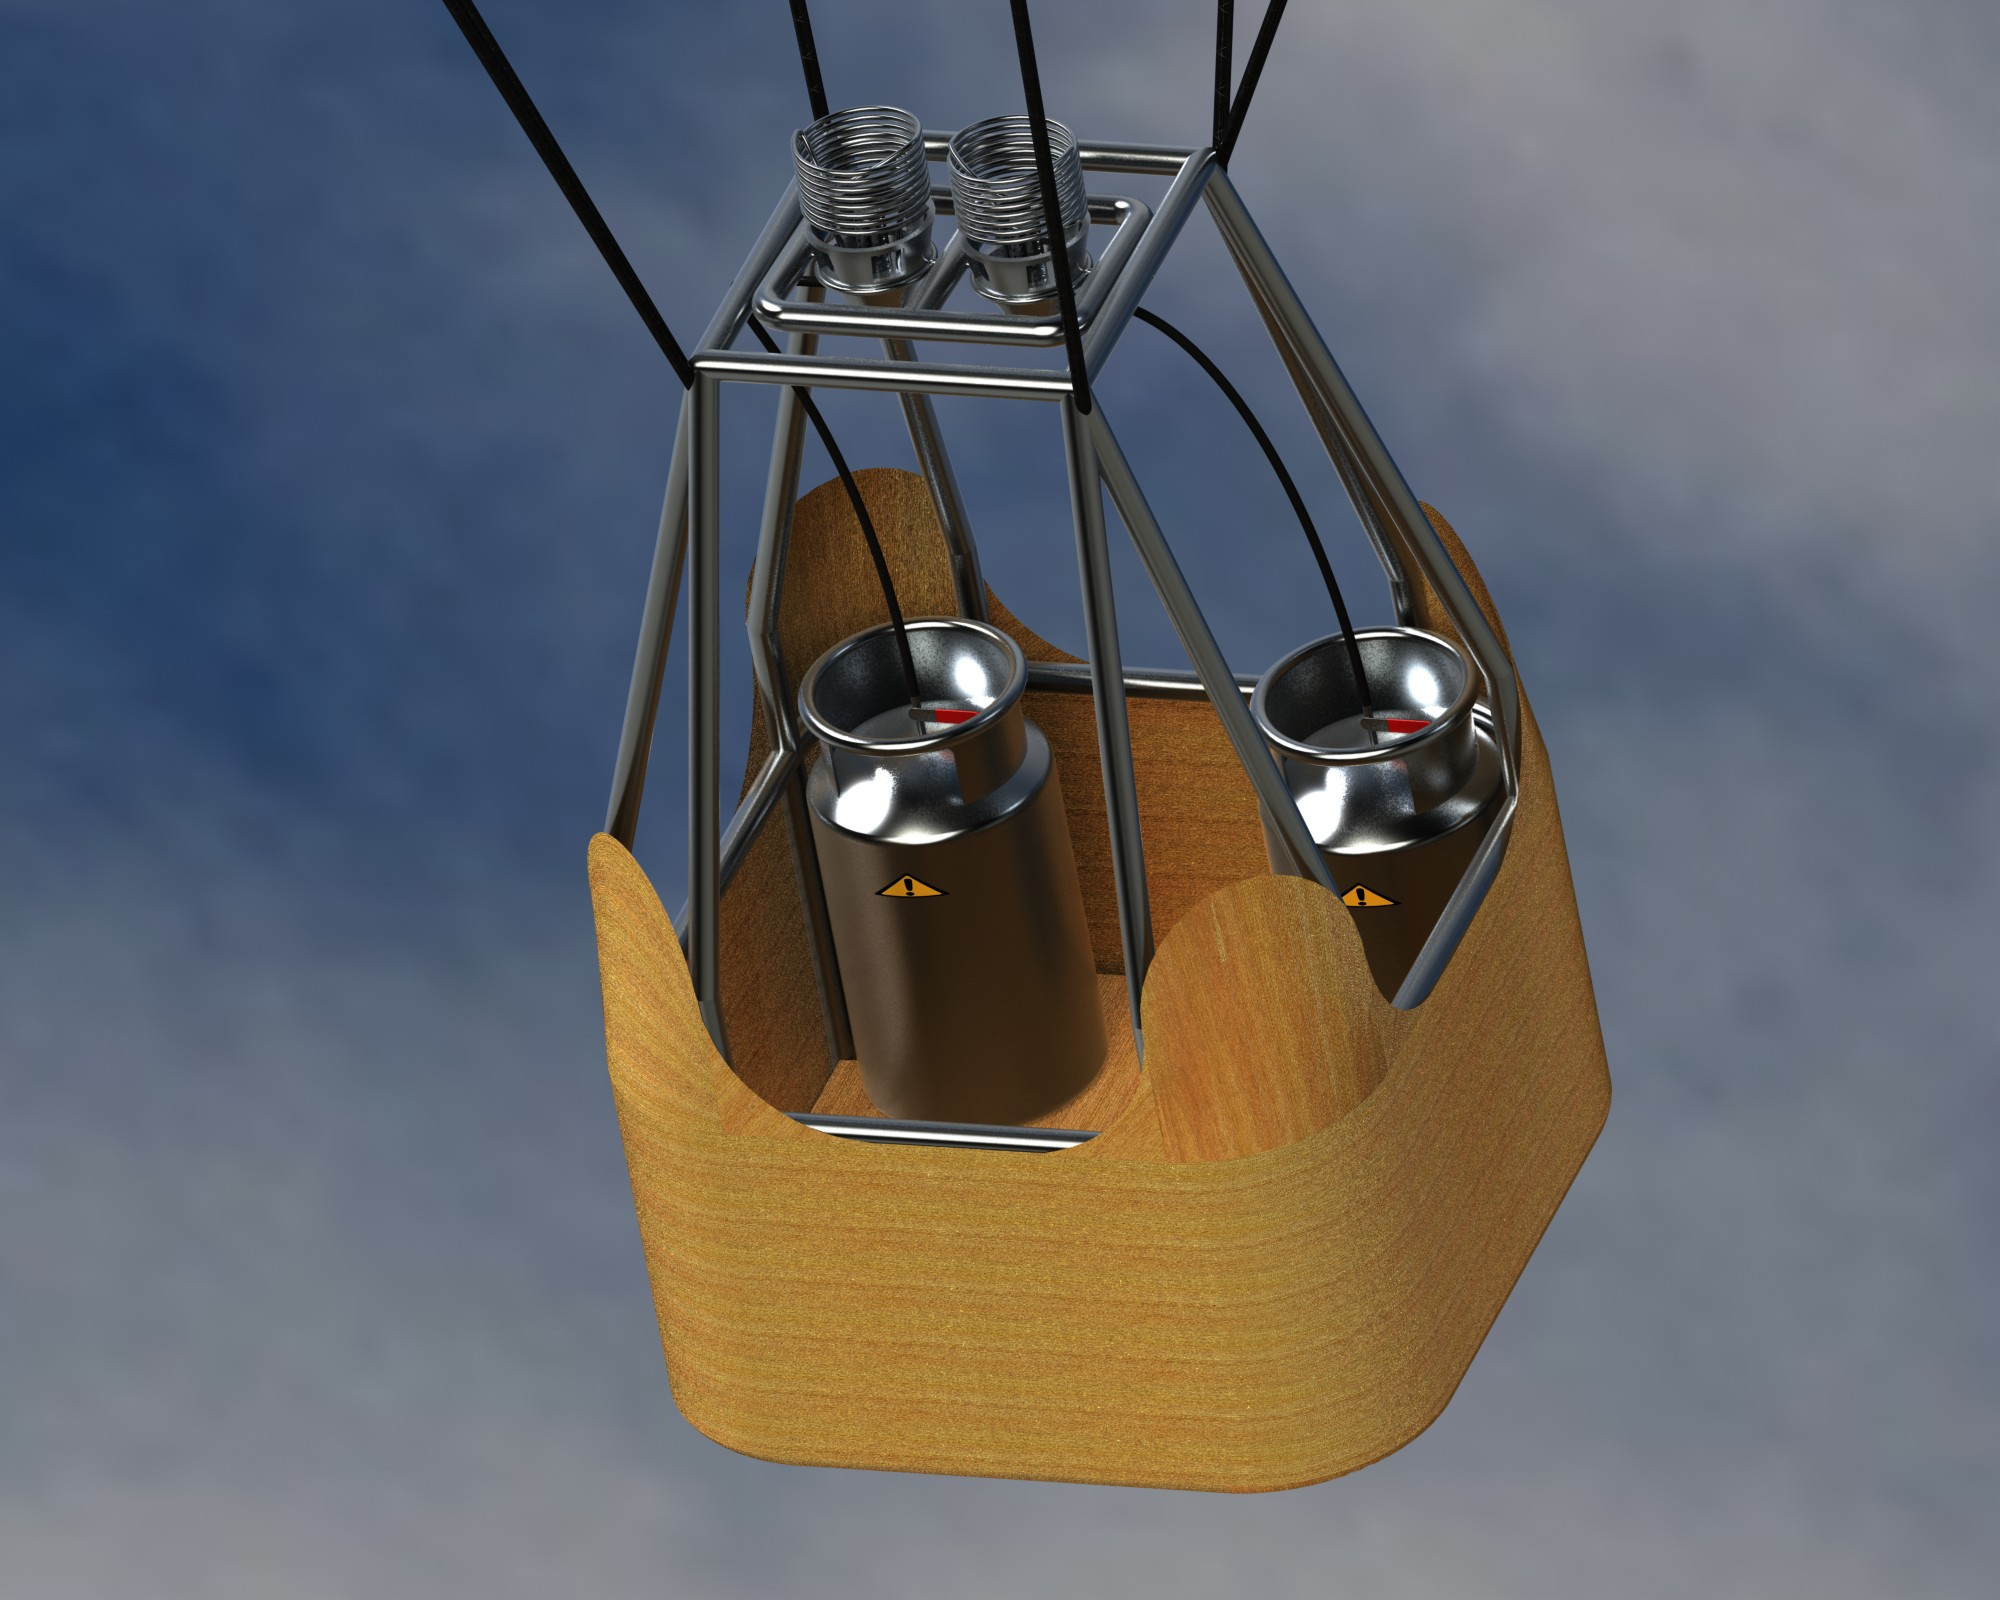 Hot Air Balloon in SolidWorks